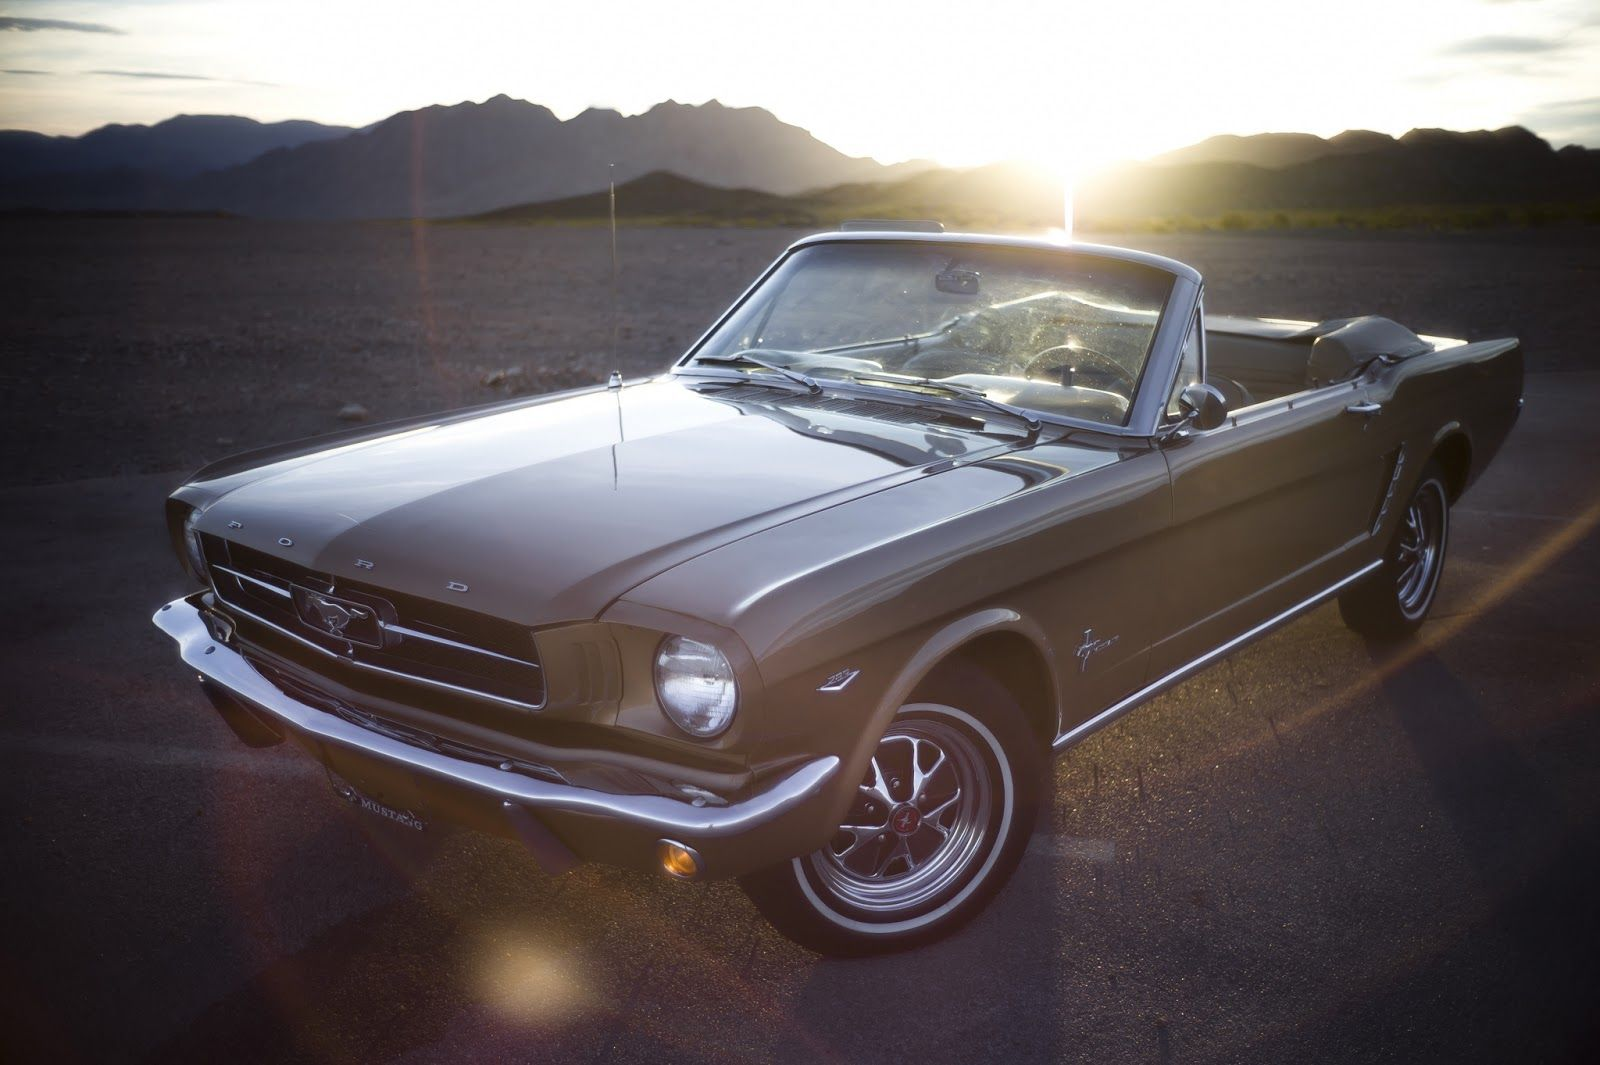 1964 1/2 Ford Mustang For sale by Viva Las Vegas Autos. Photo by ...